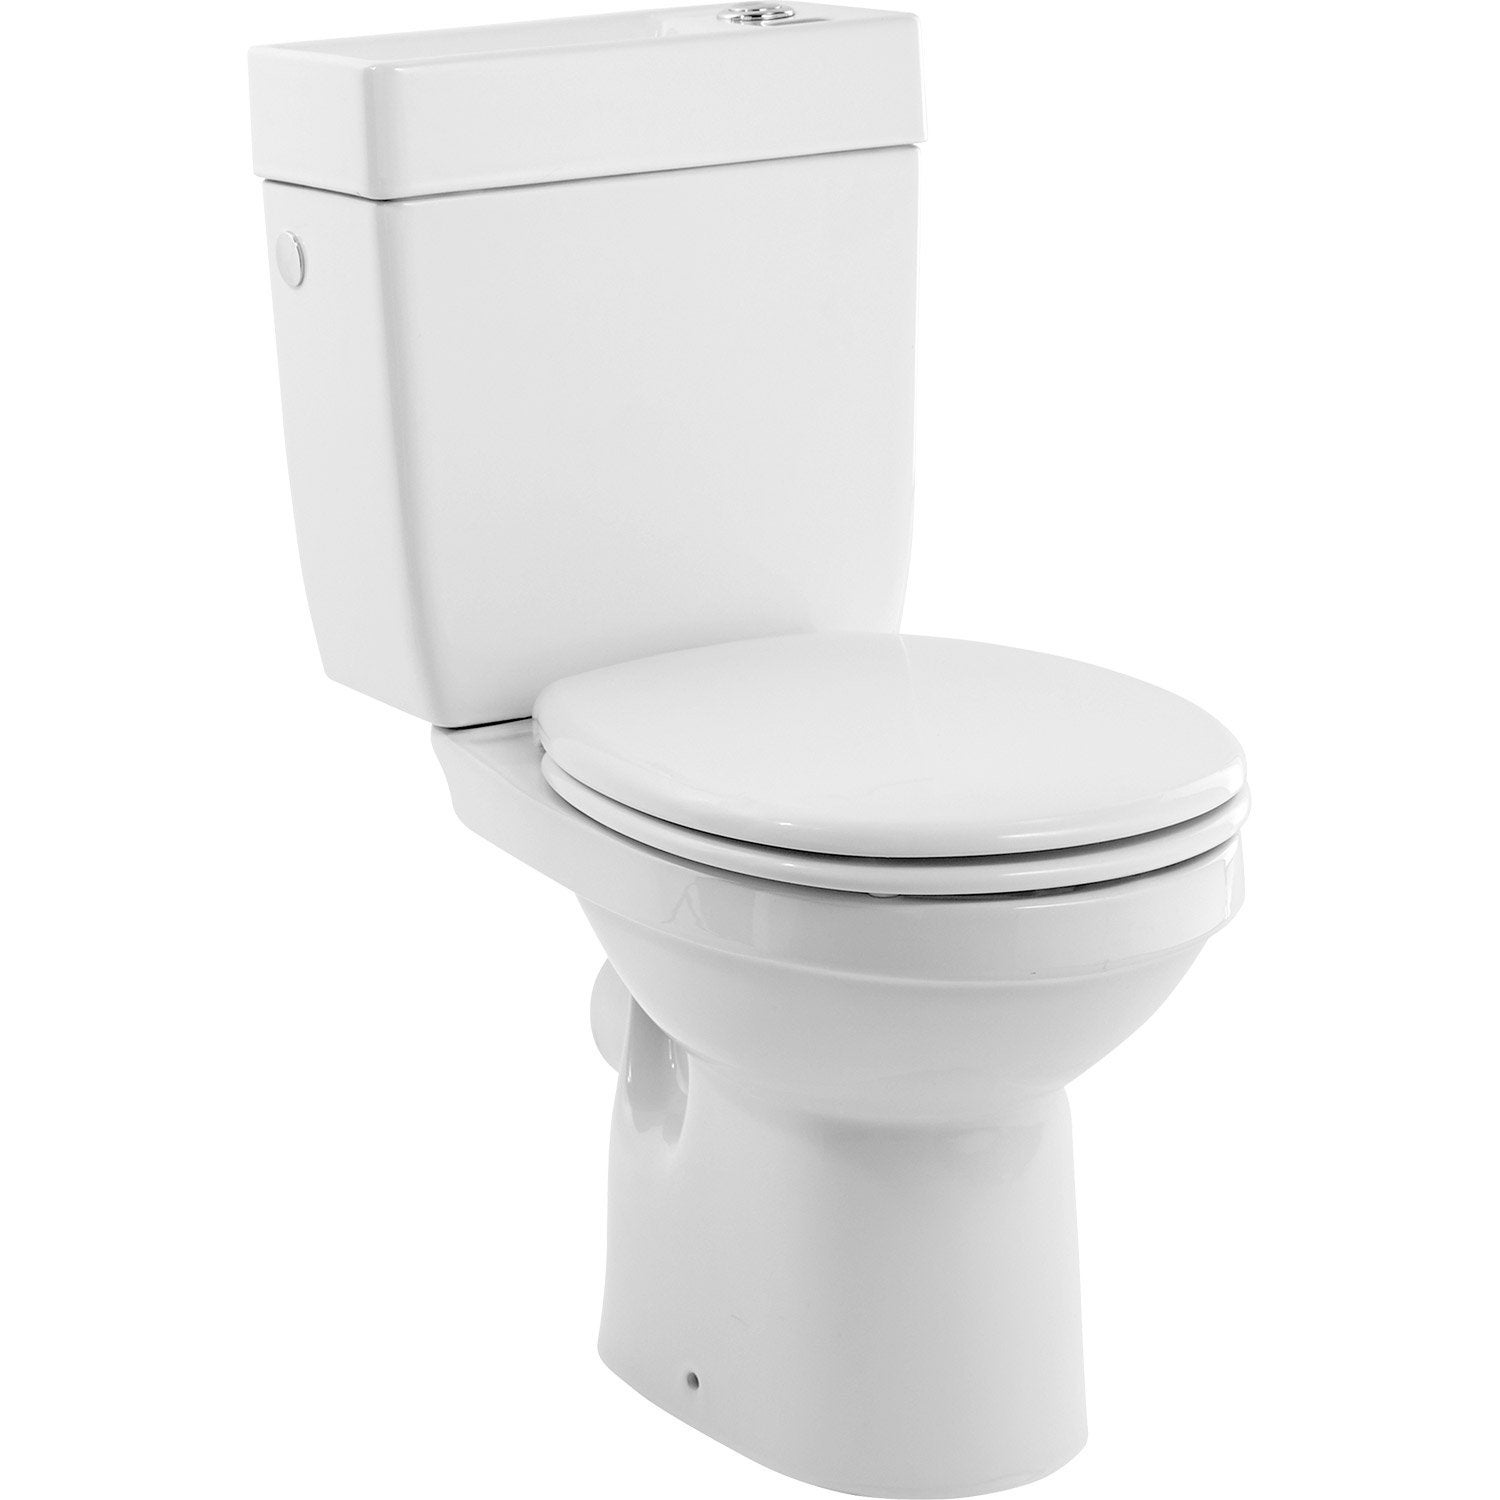 Pack wc poser orion sortie horizontale leroy merlin for Petit toilette leroy merlin